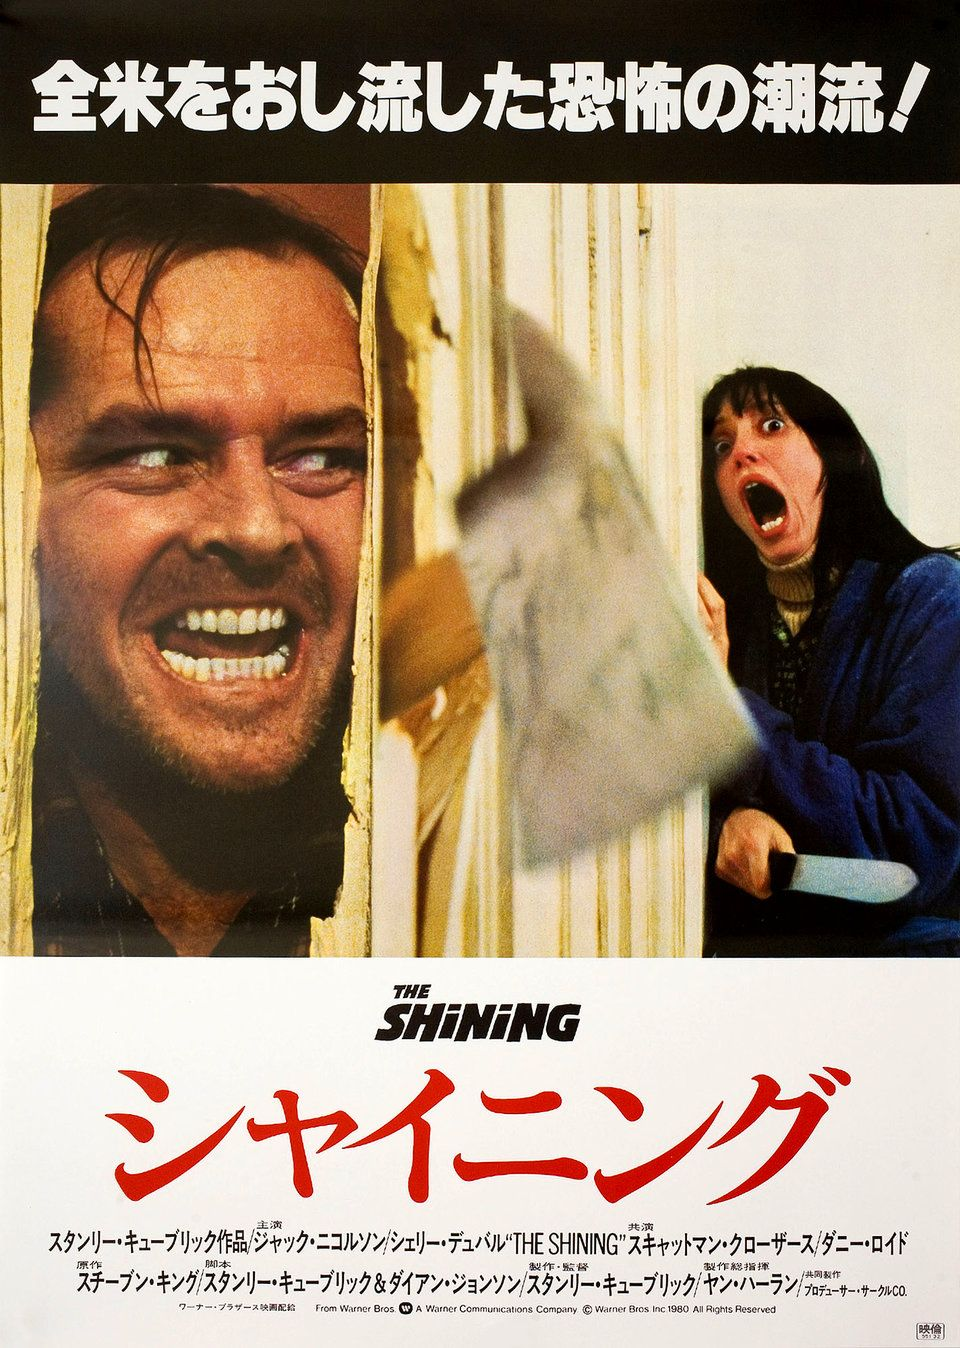 The Shining 1980 Japanese B2 Poster in 2019 | Movie posters